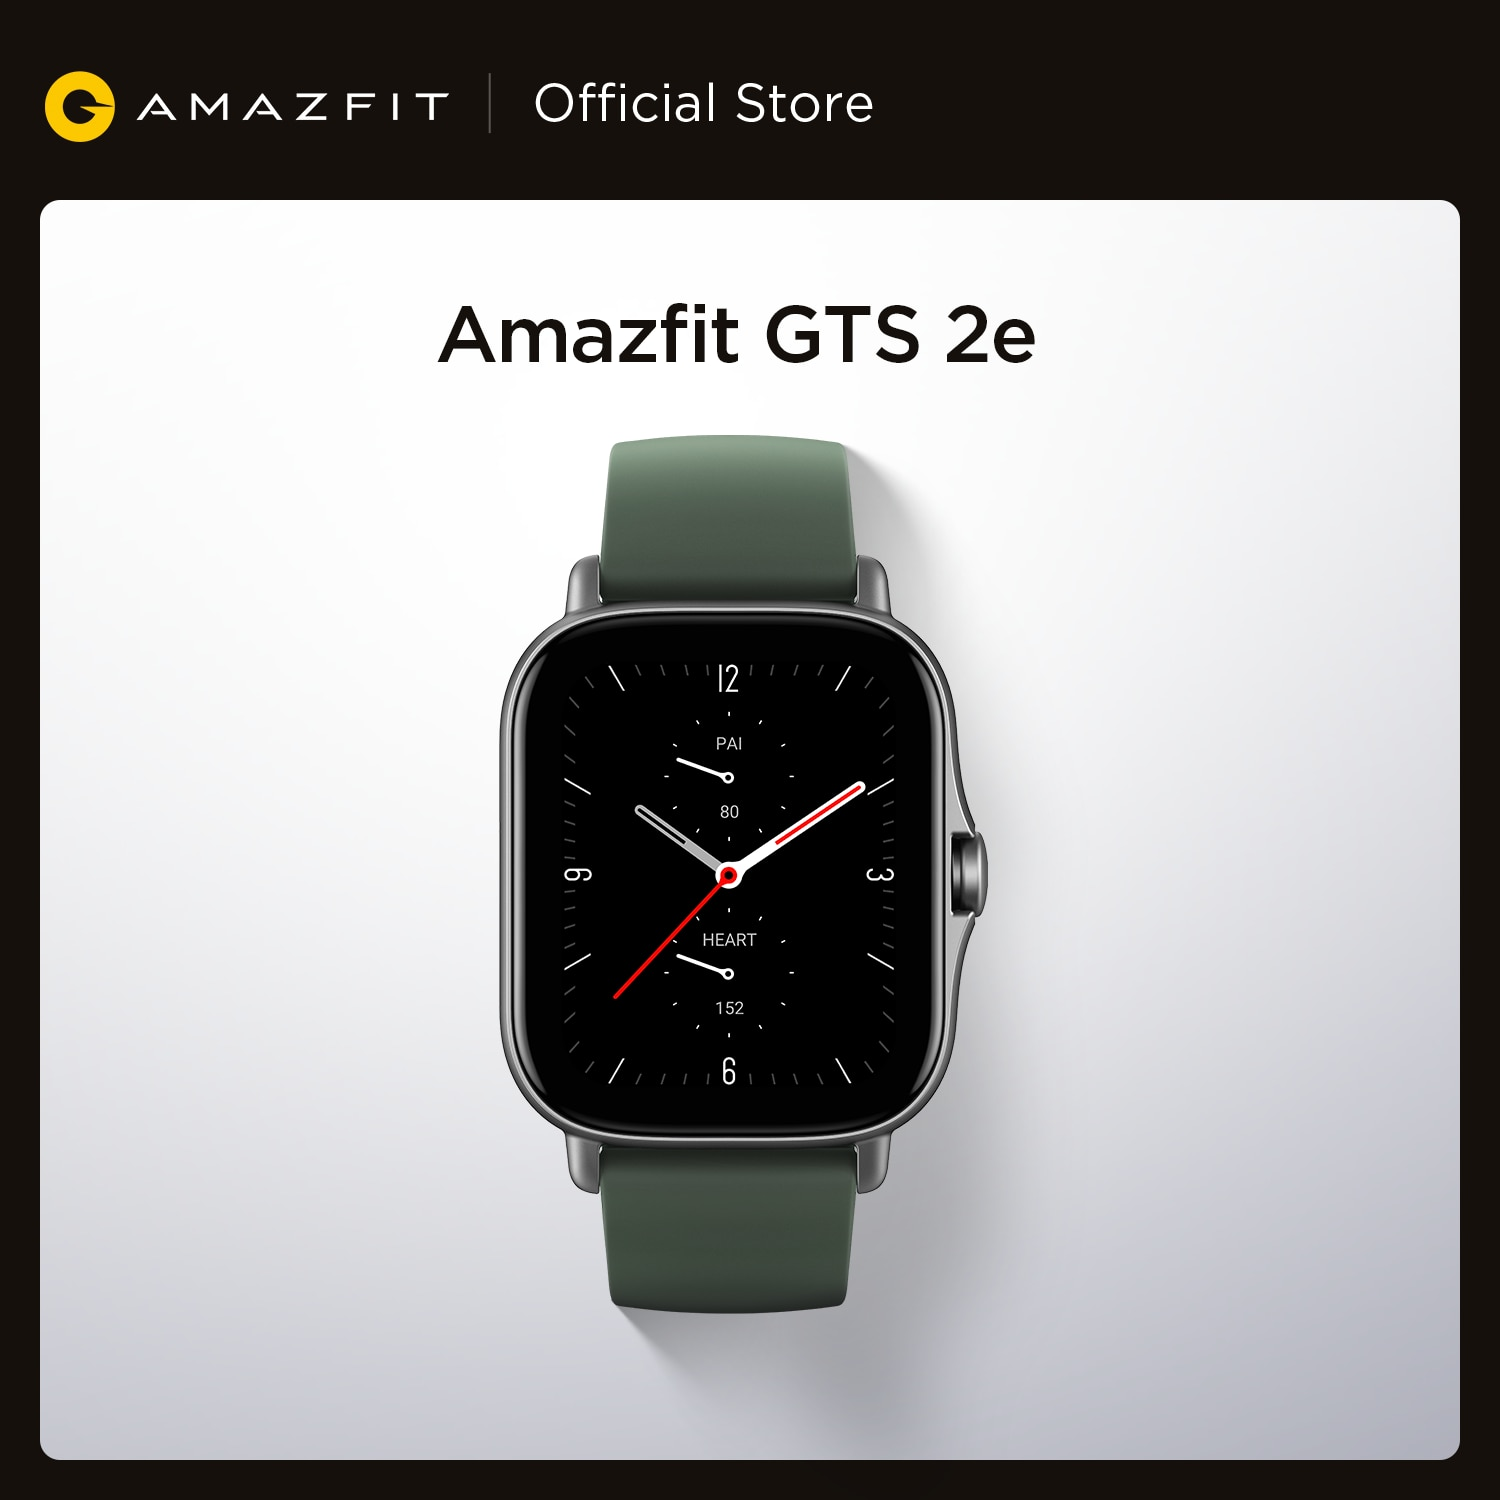 Review 2021 Global Version Amazfit GTS 2e Smartwatch Sleep Quaility Monitoring 90 Sports Modes Swimming Smart Watch Alexa Built-in